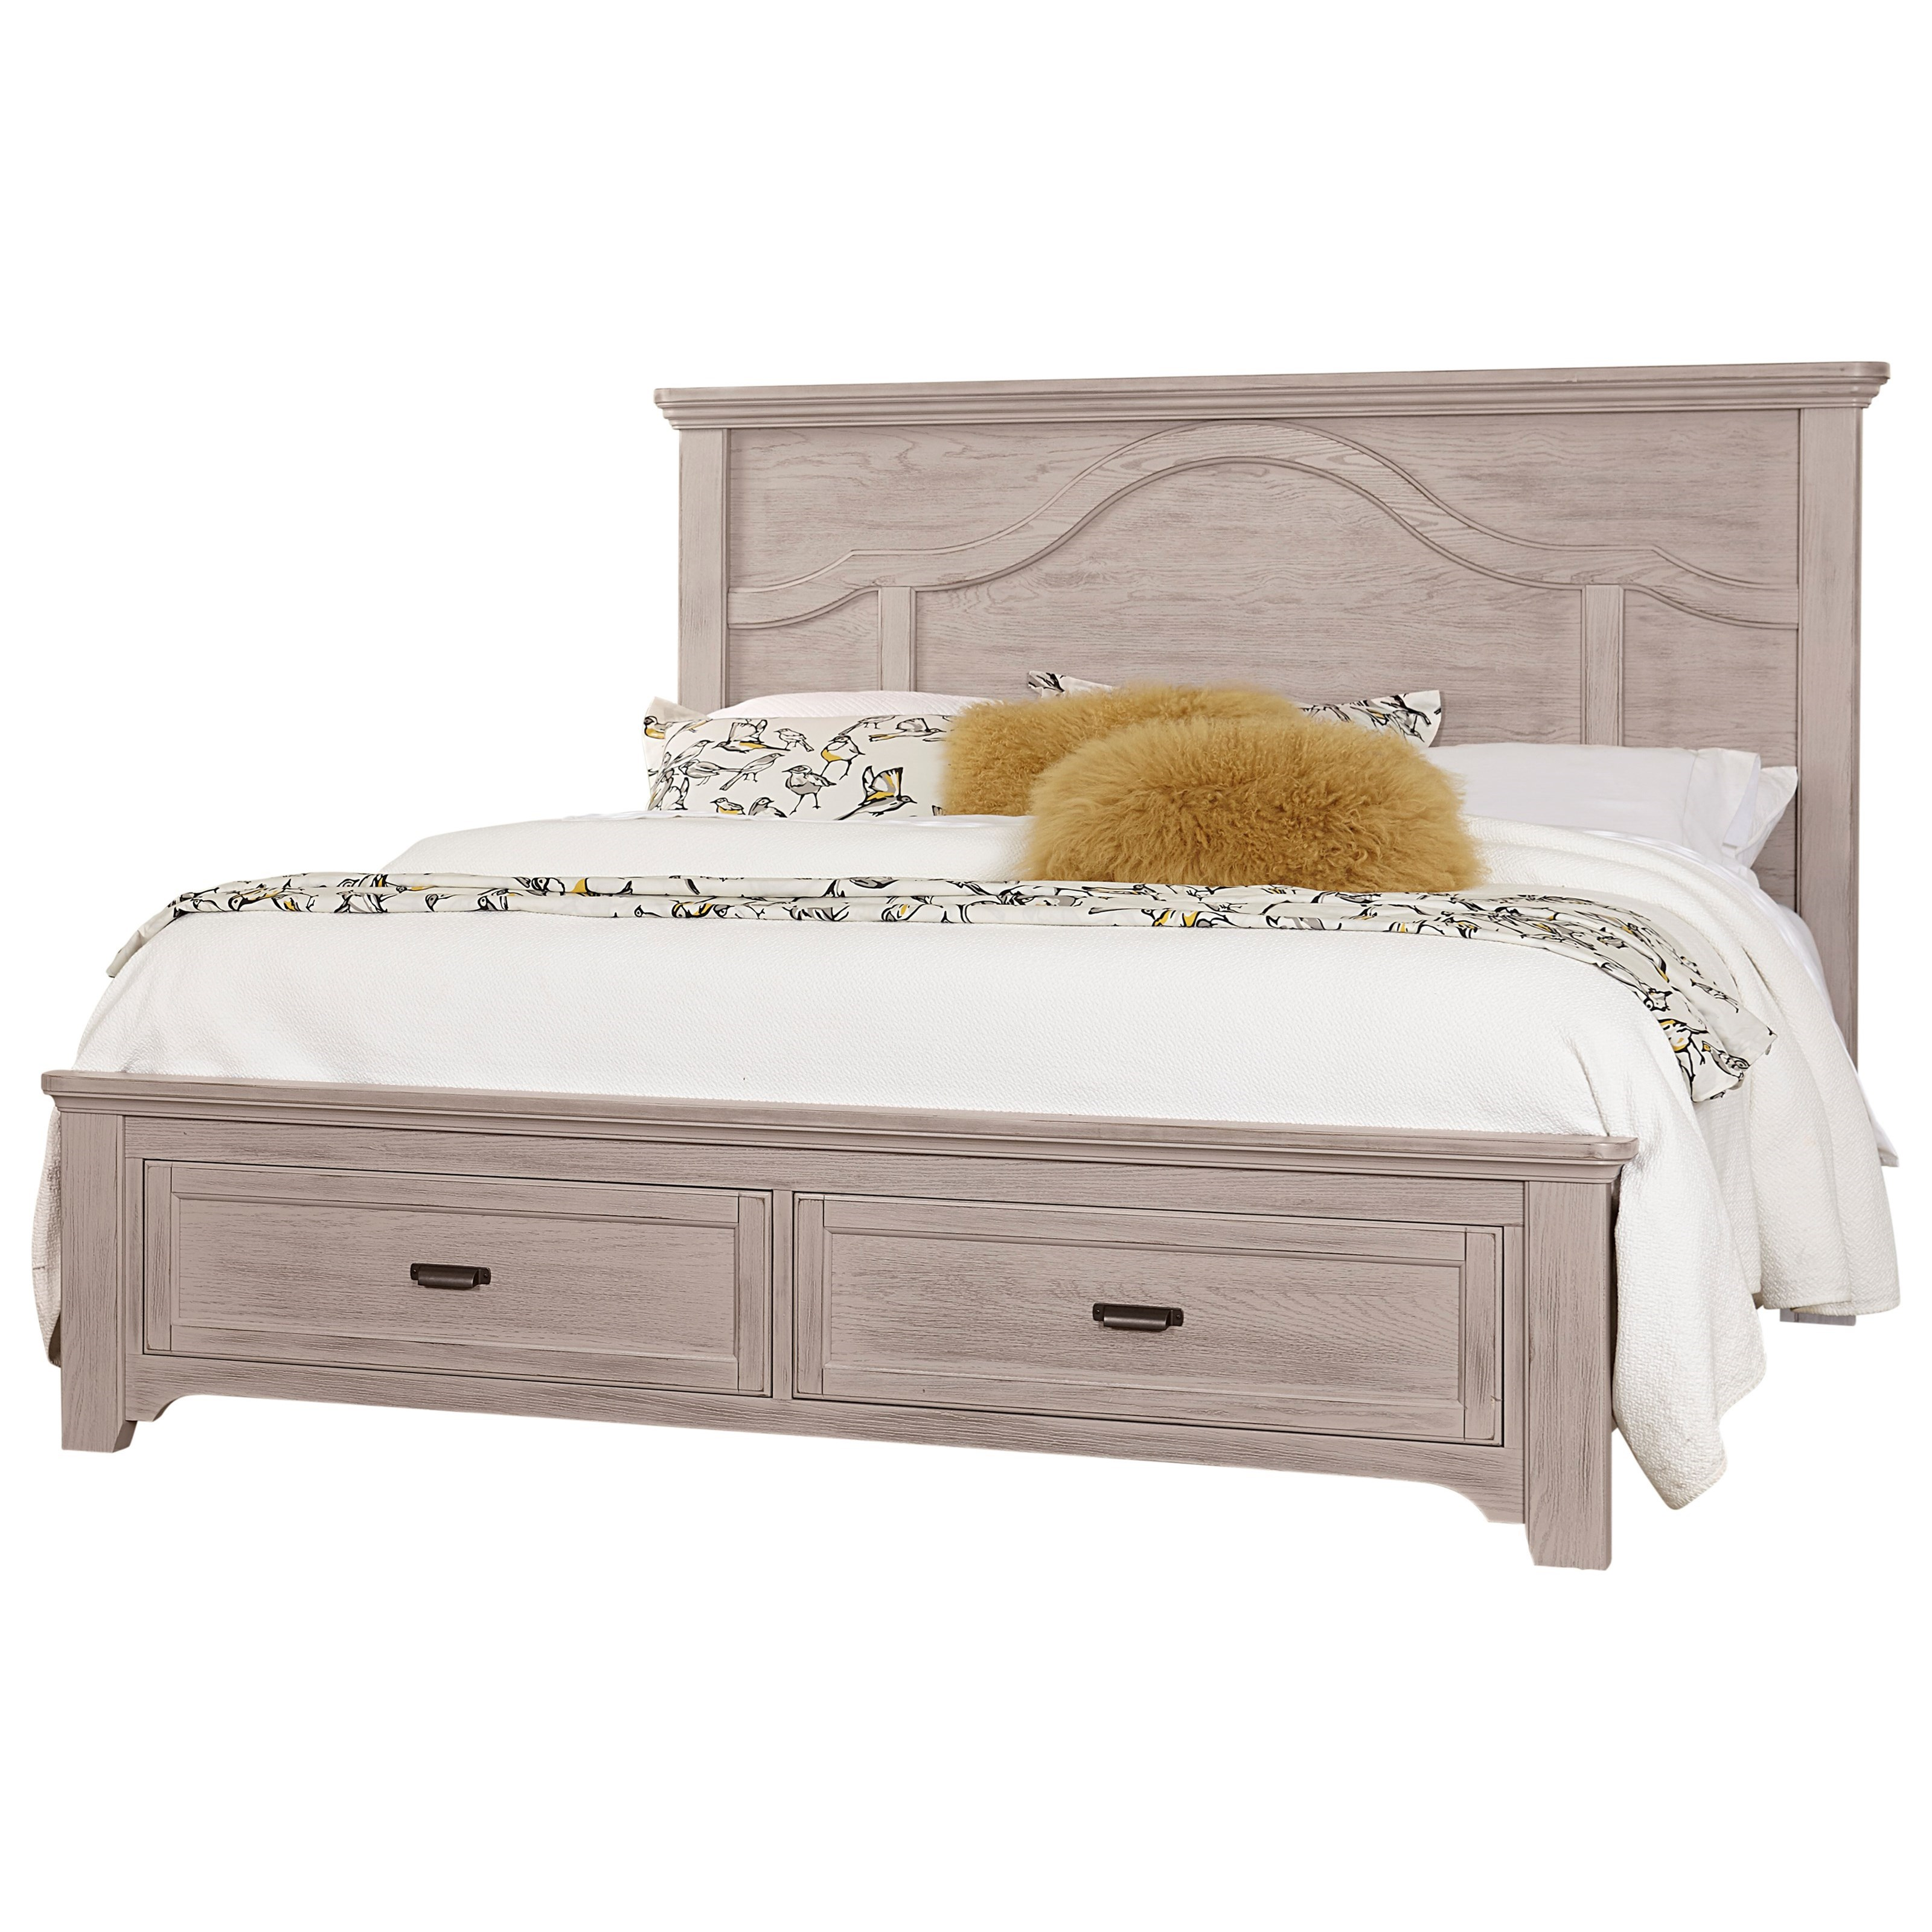 Bungalow King Storage Bed by Laurel Mercantile Co. at Johnny Janosik